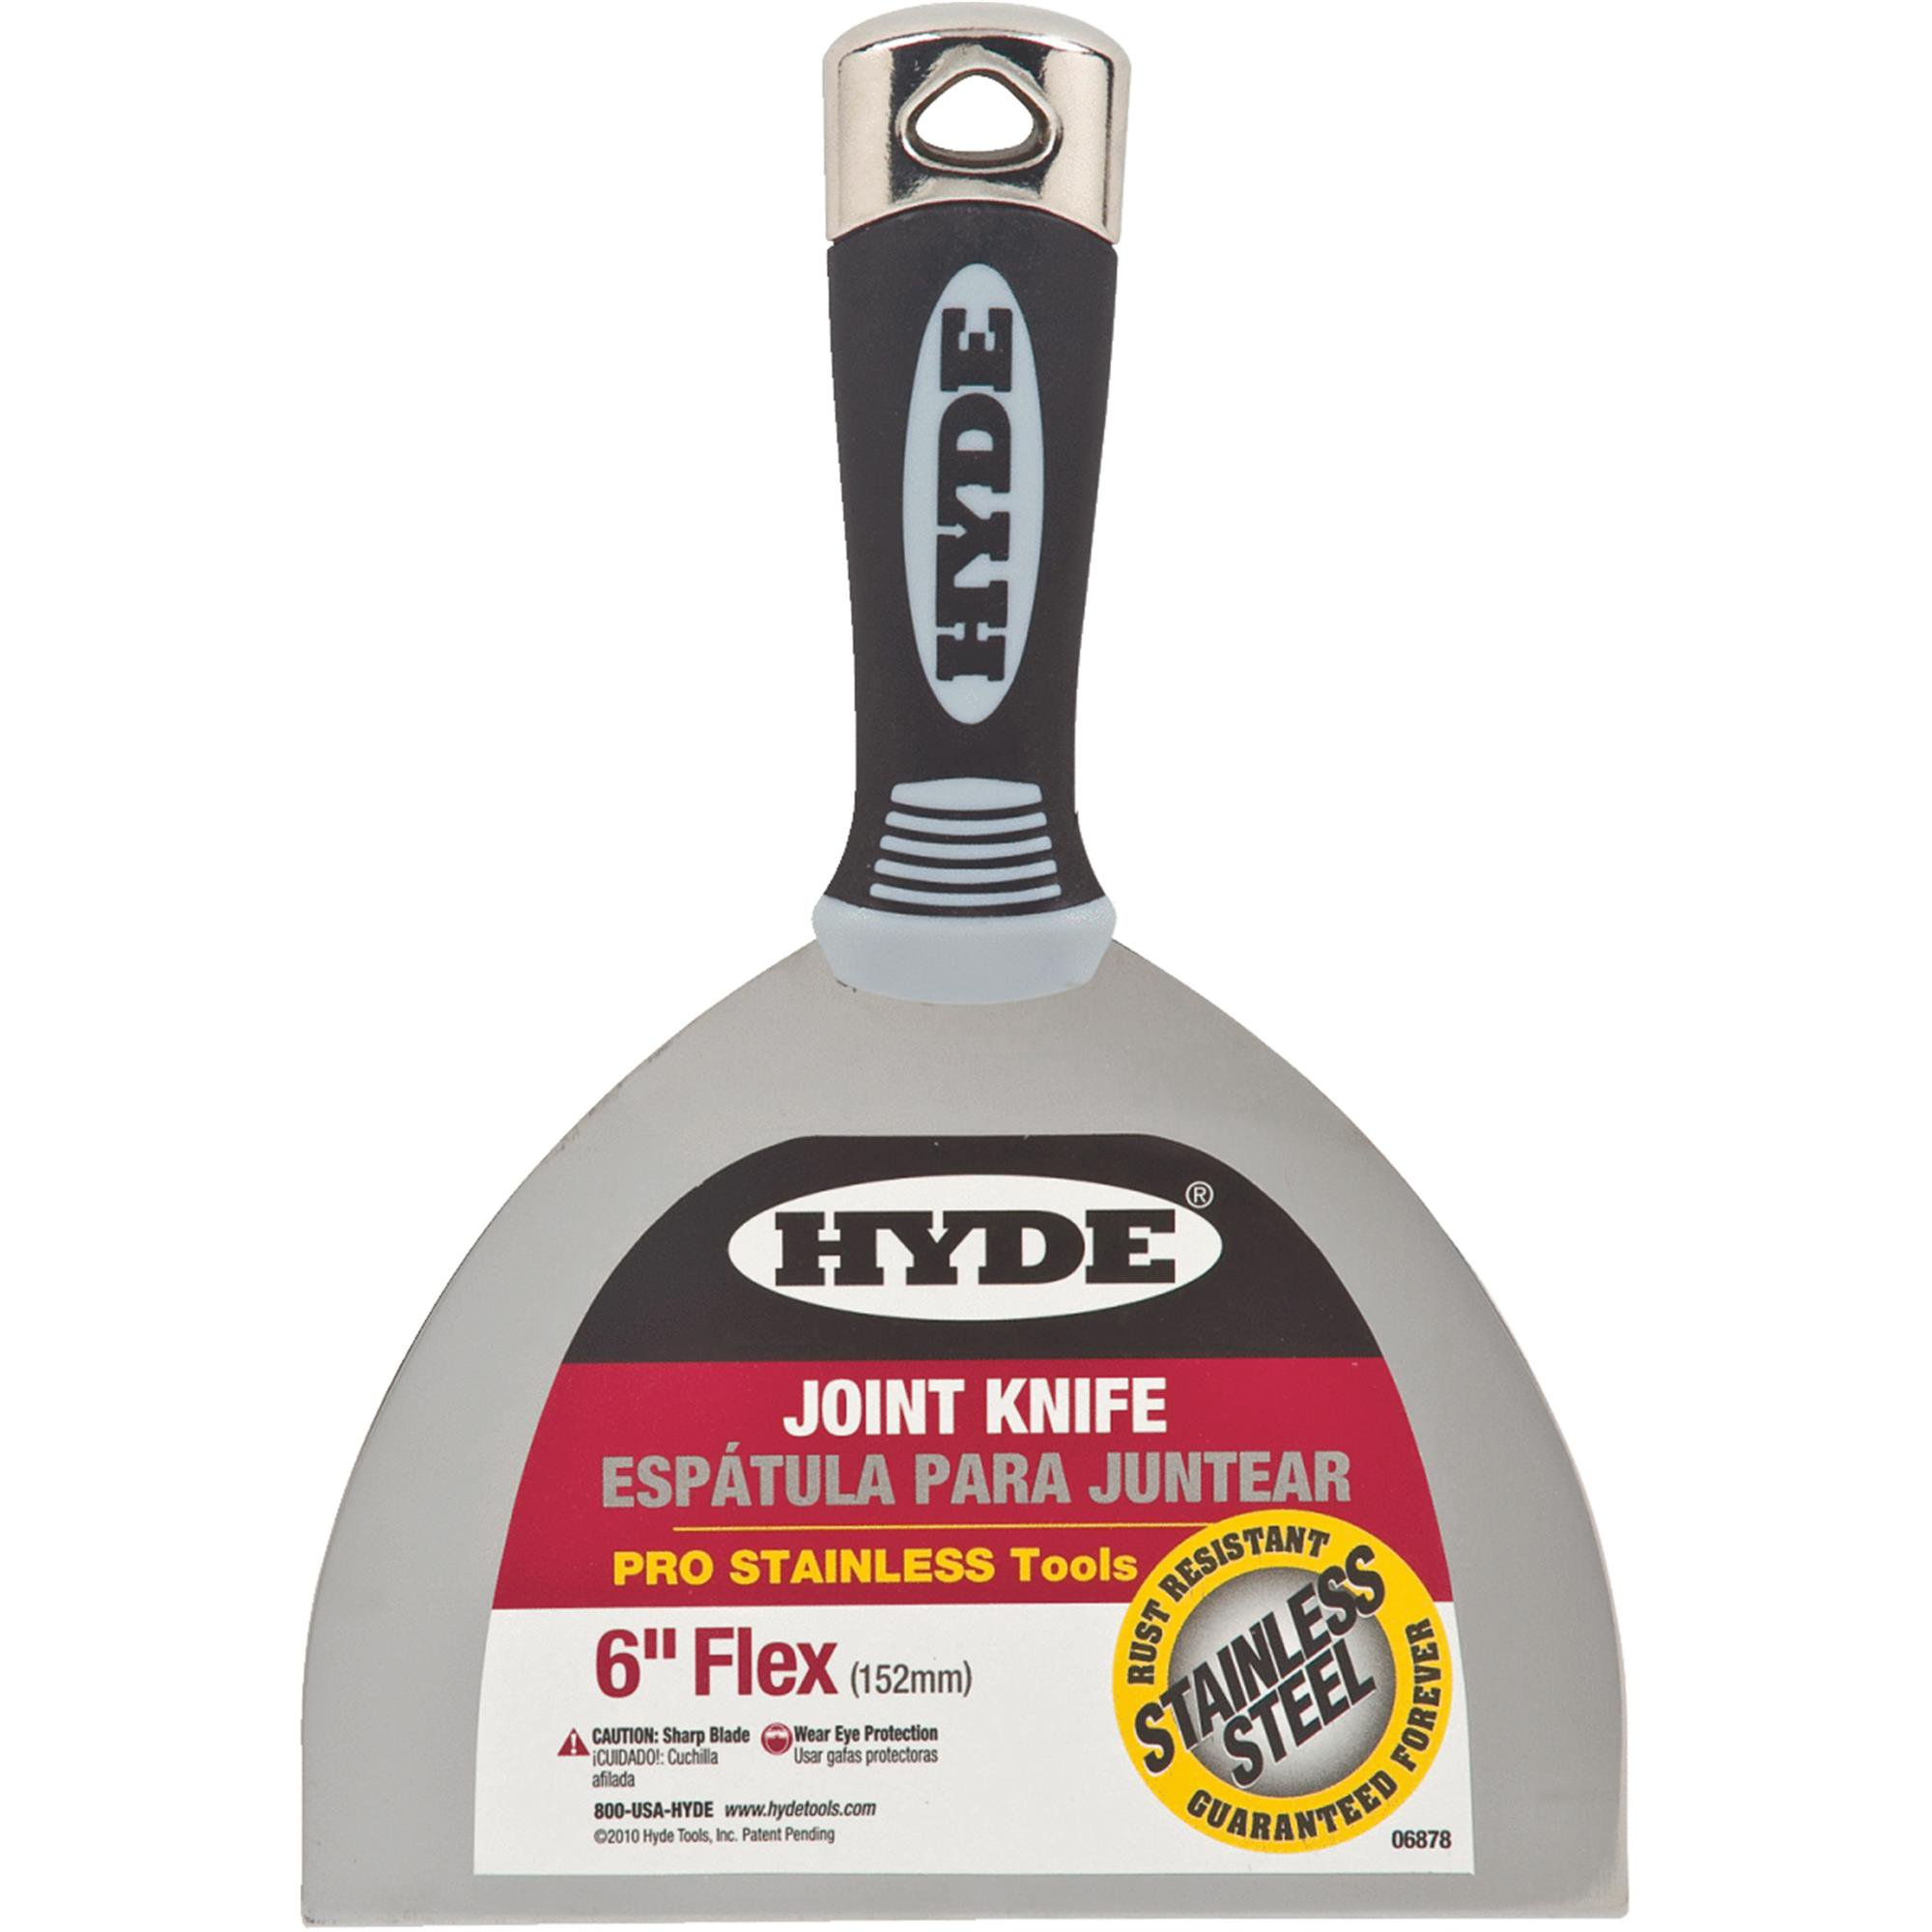 Hyde Pro Stainless Joint Knife